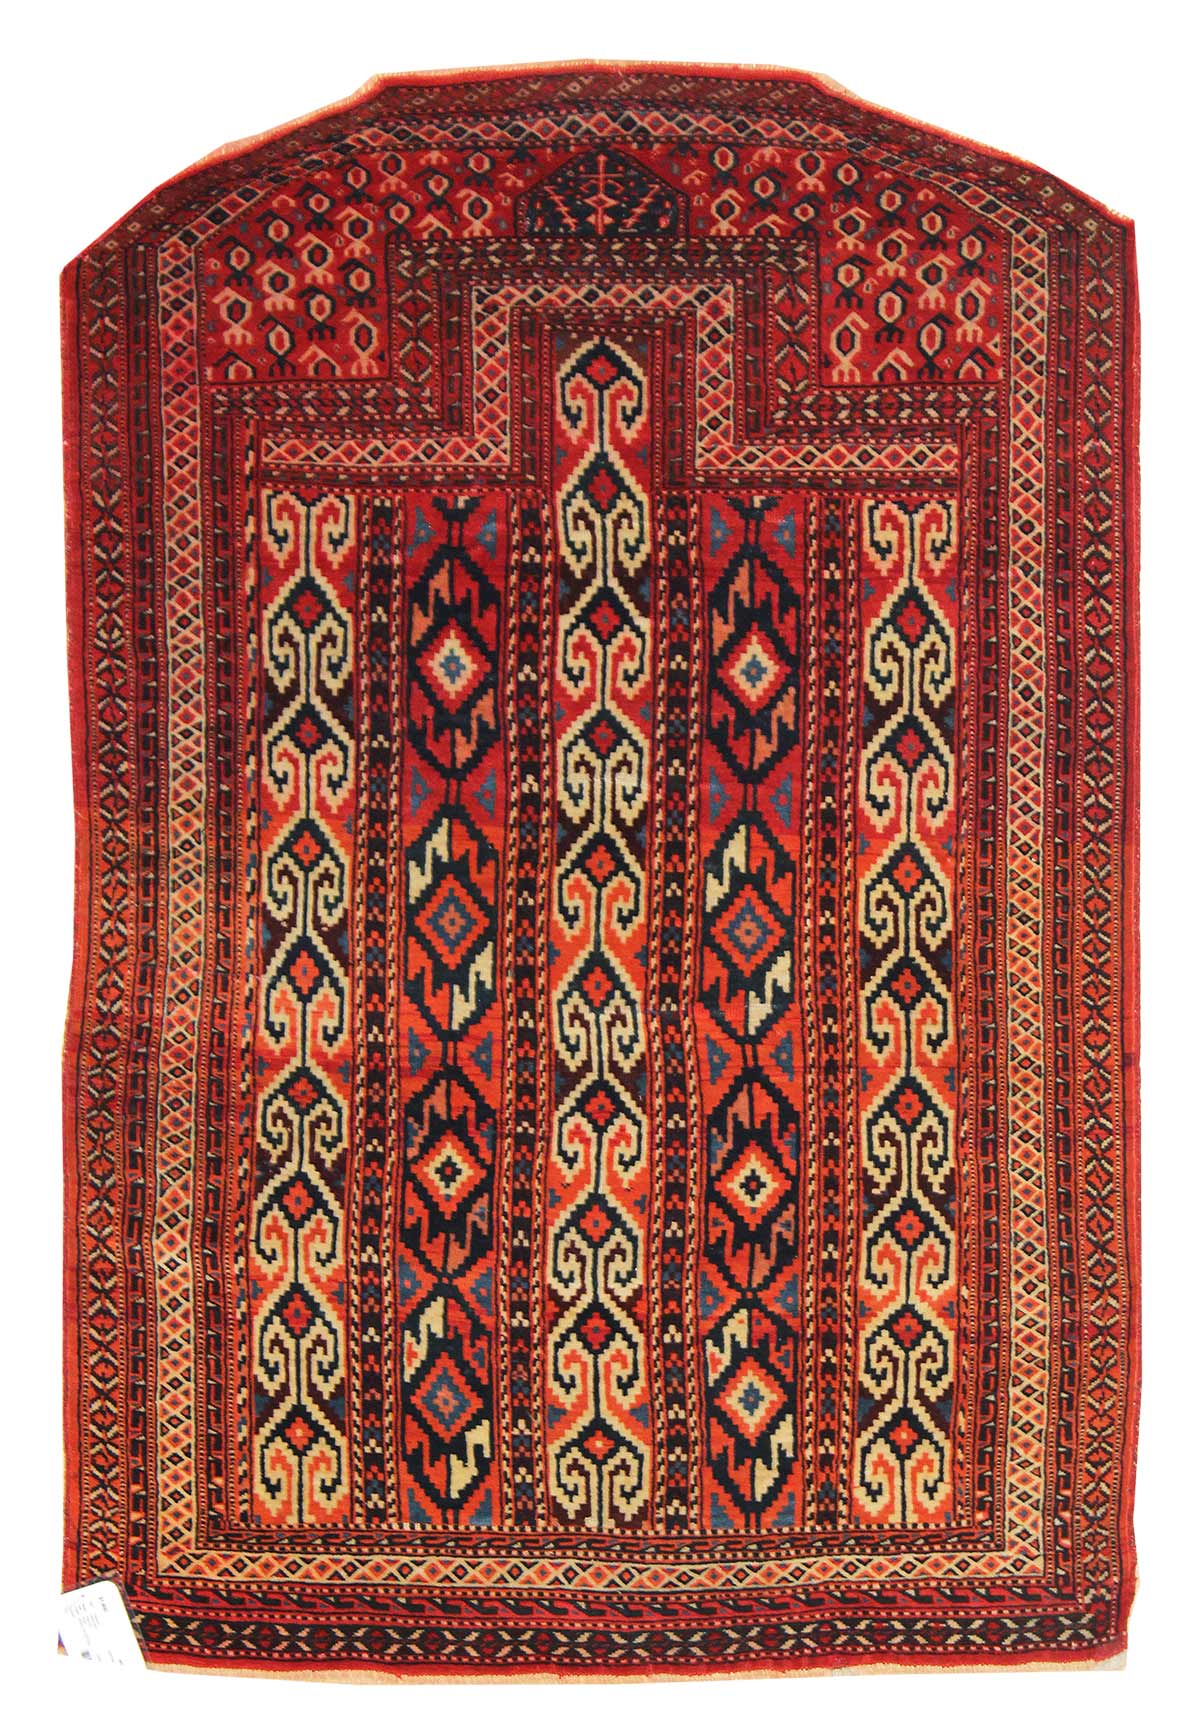 Antique Yomud Handwoven Tribal Rug